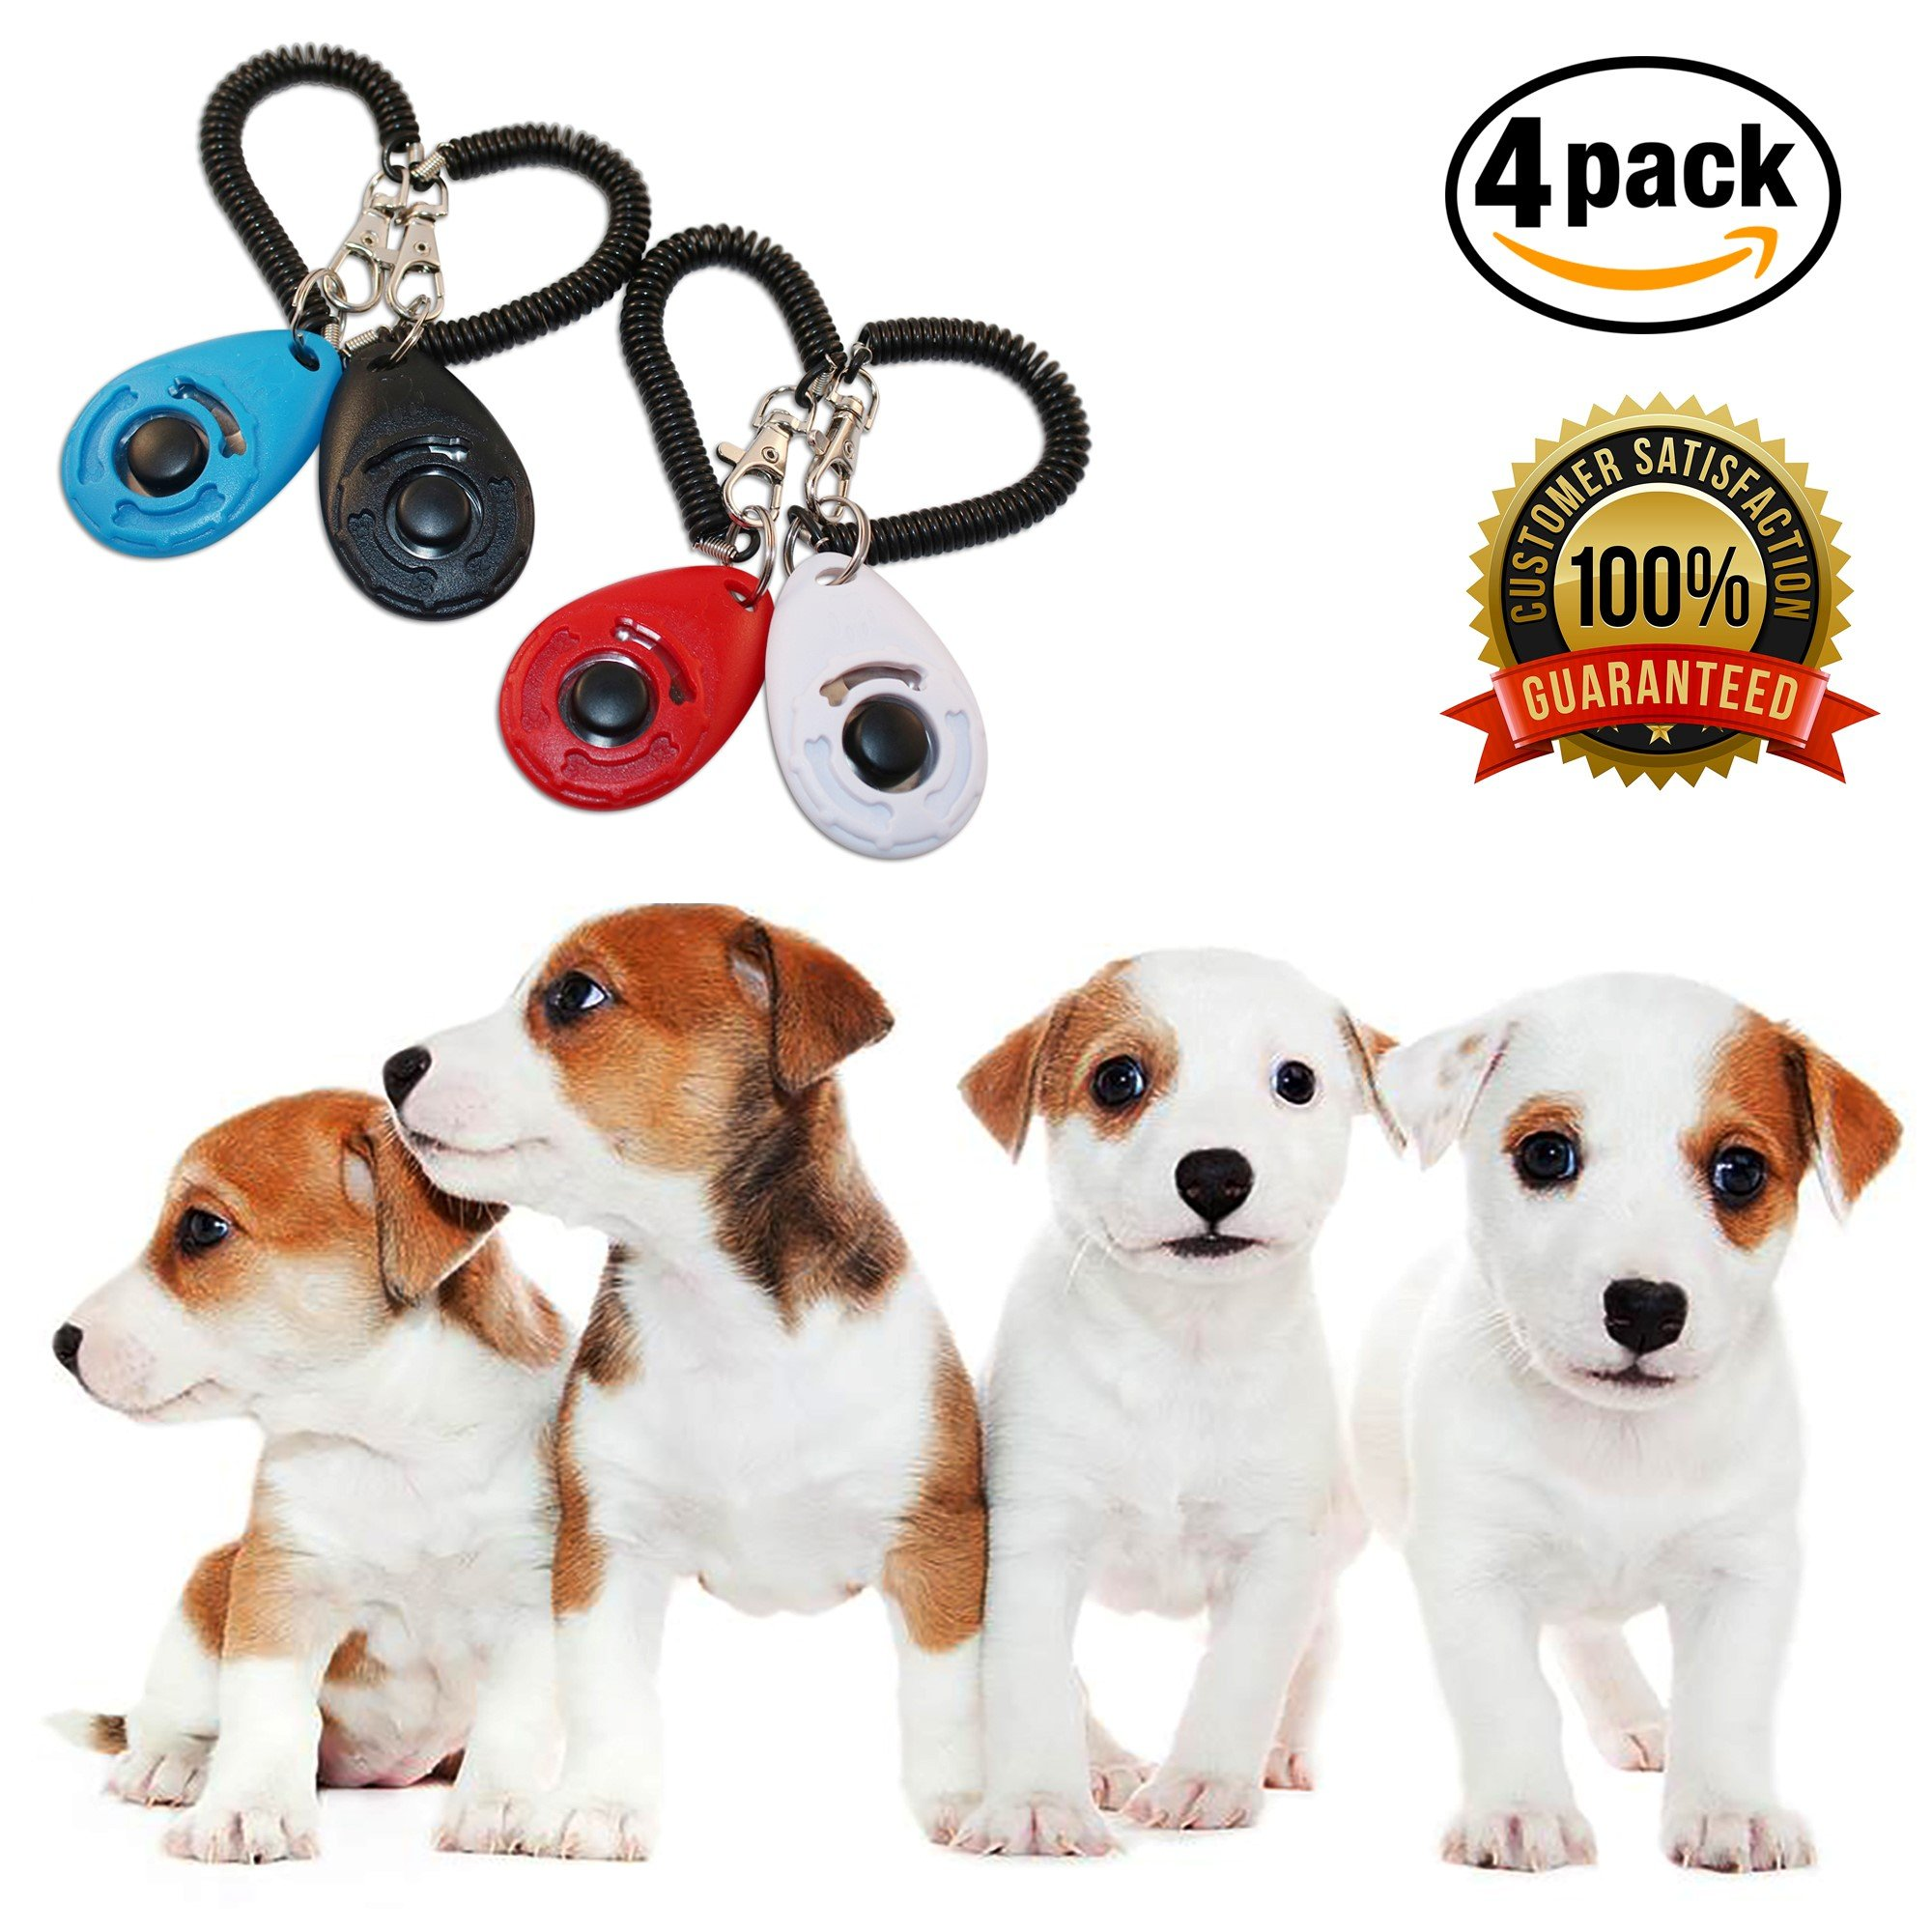 Clicker Training For Dogs - Best Obedience Clicker For Adult Dog And Puppy Training - 2017 NEW UPGRADED version 4 Pack - Teach Tricks And Correct Bad Behavior The Humane Way - Reinforced Wrist Strap